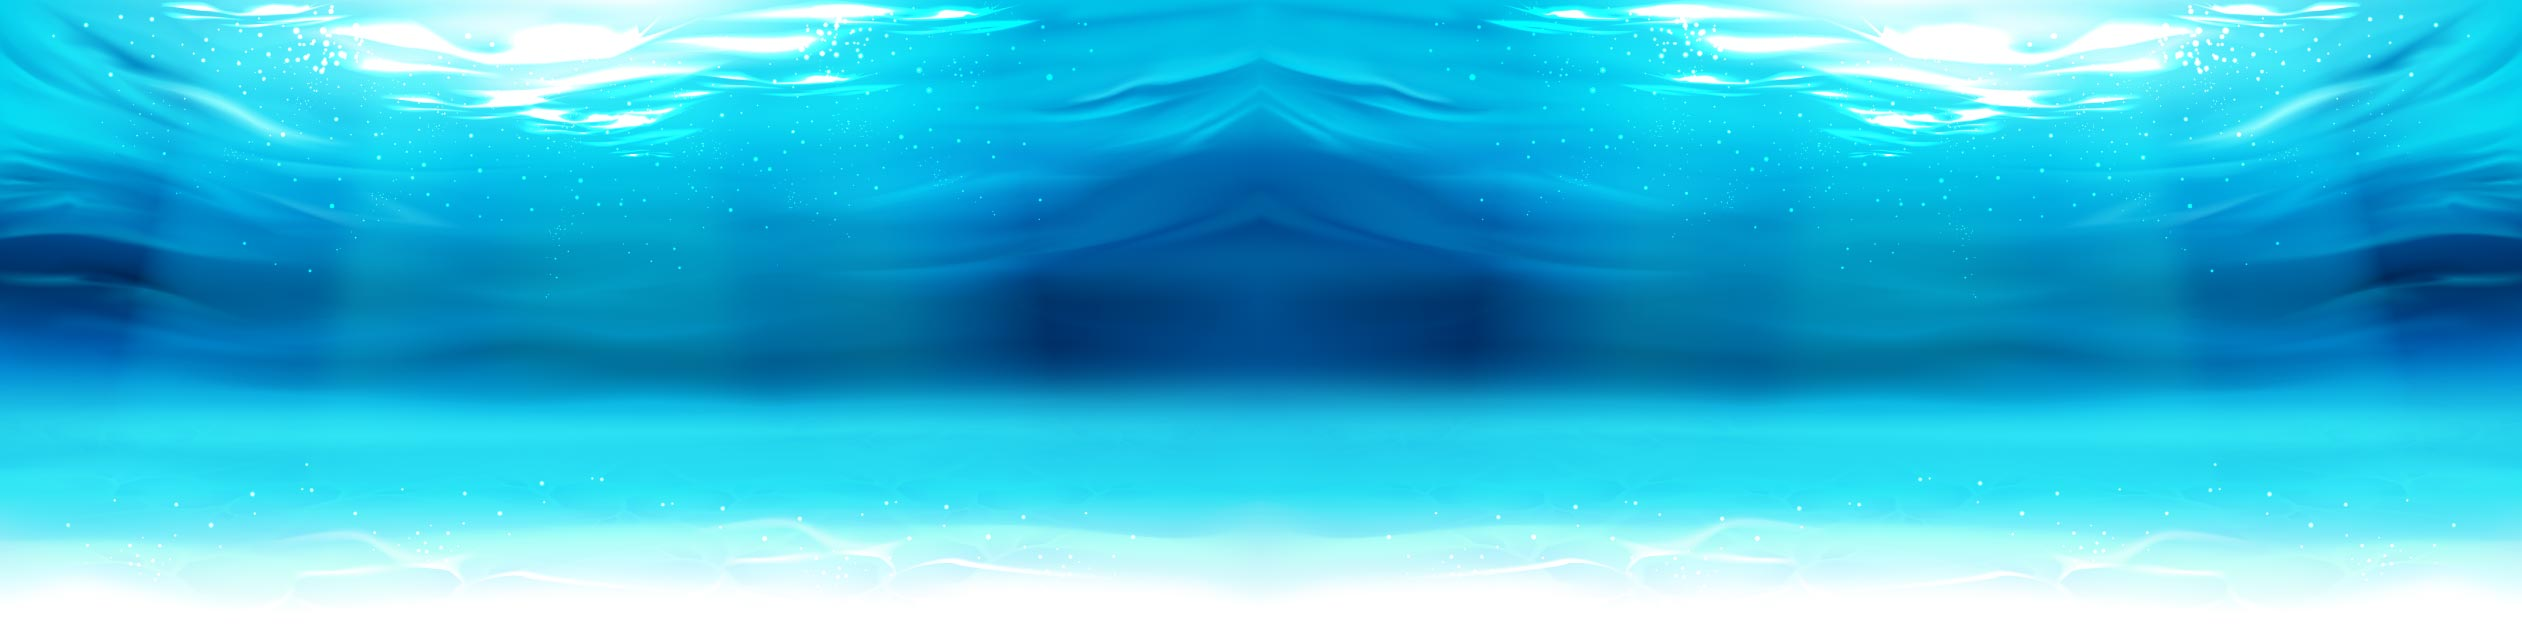 background fususu